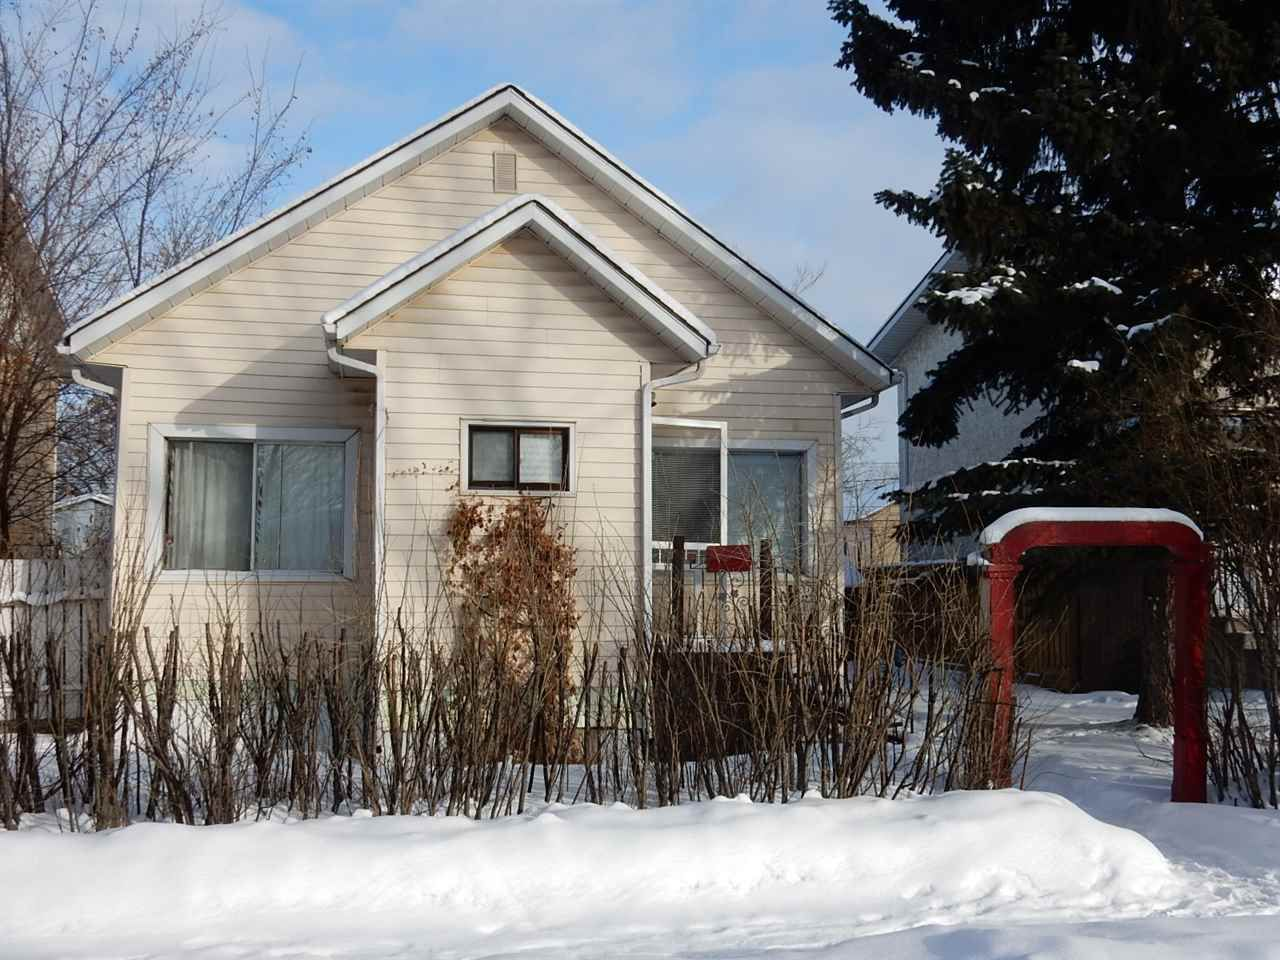 Main Photo: 12717 123A Street in Edmonton: Zone 01 House for sale : MLS®# E4145169